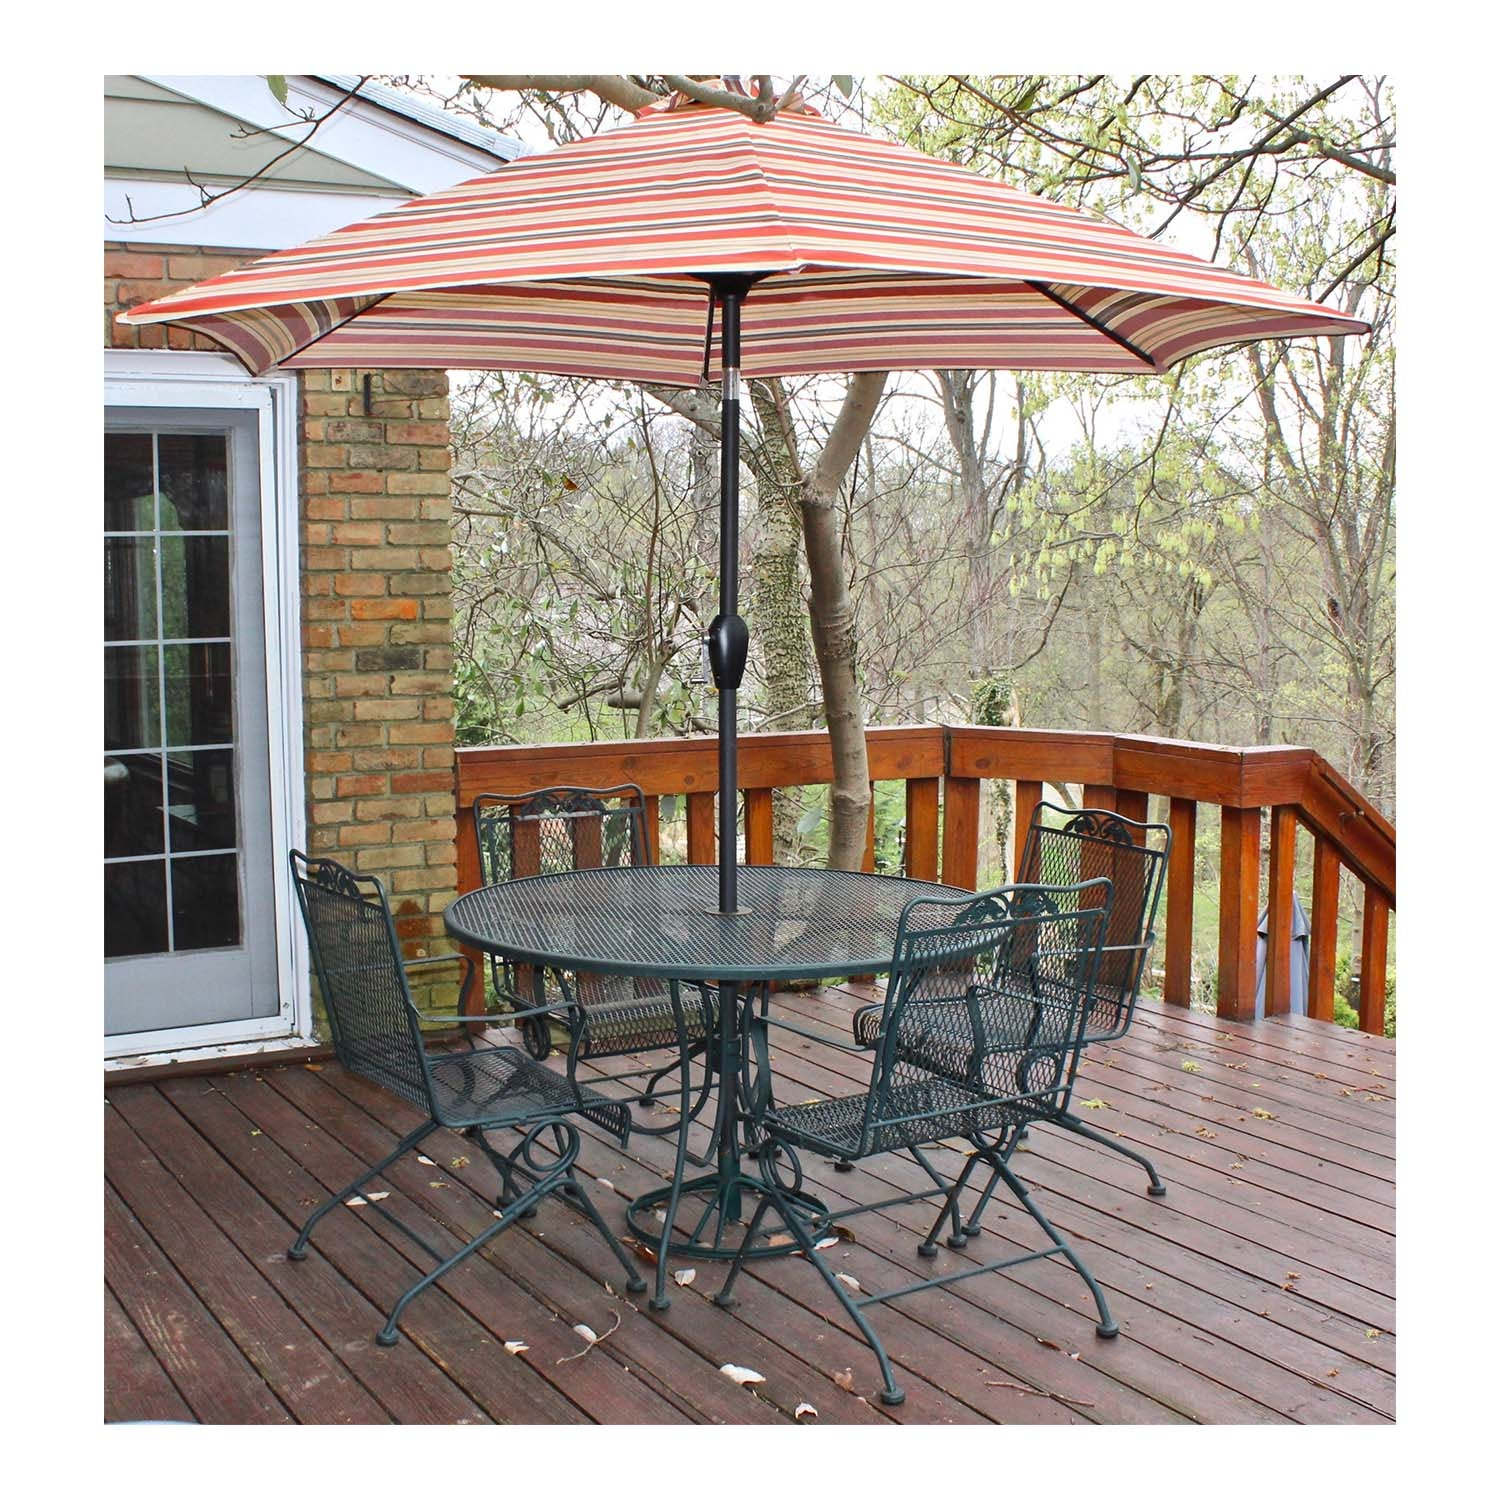 Iron Outdoor Patio Dining Table, Chairs and Umbrella